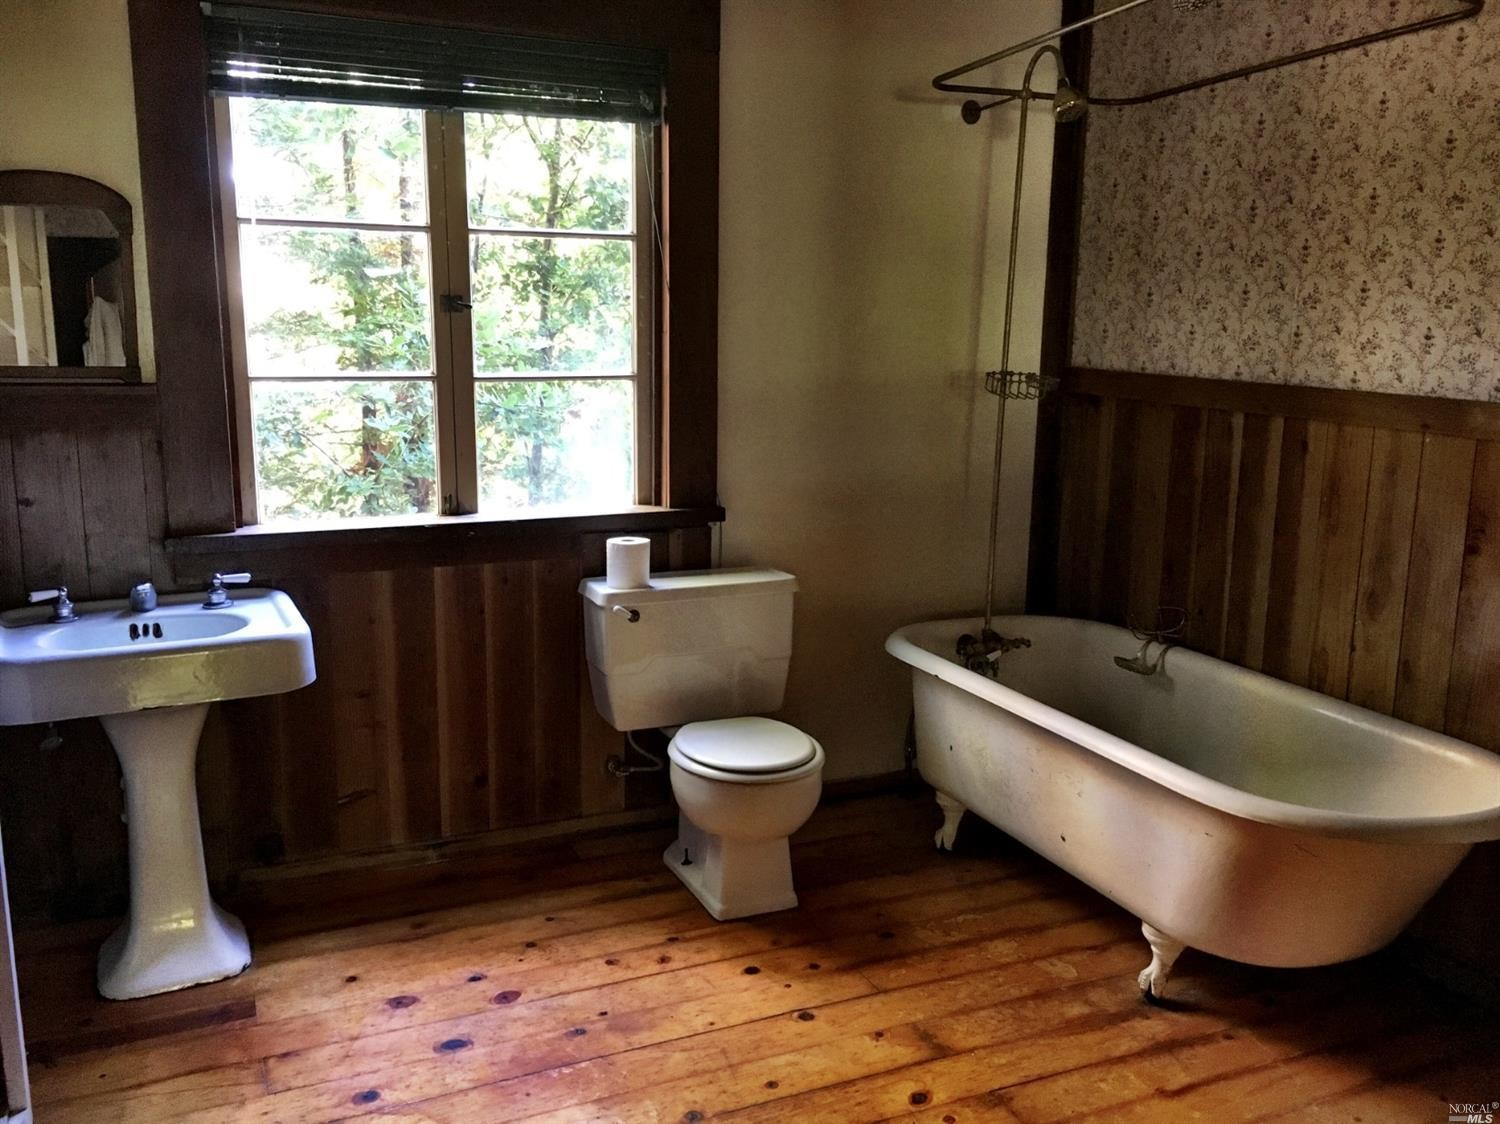 rustic bathroom in a family home for sale, Philo, CA